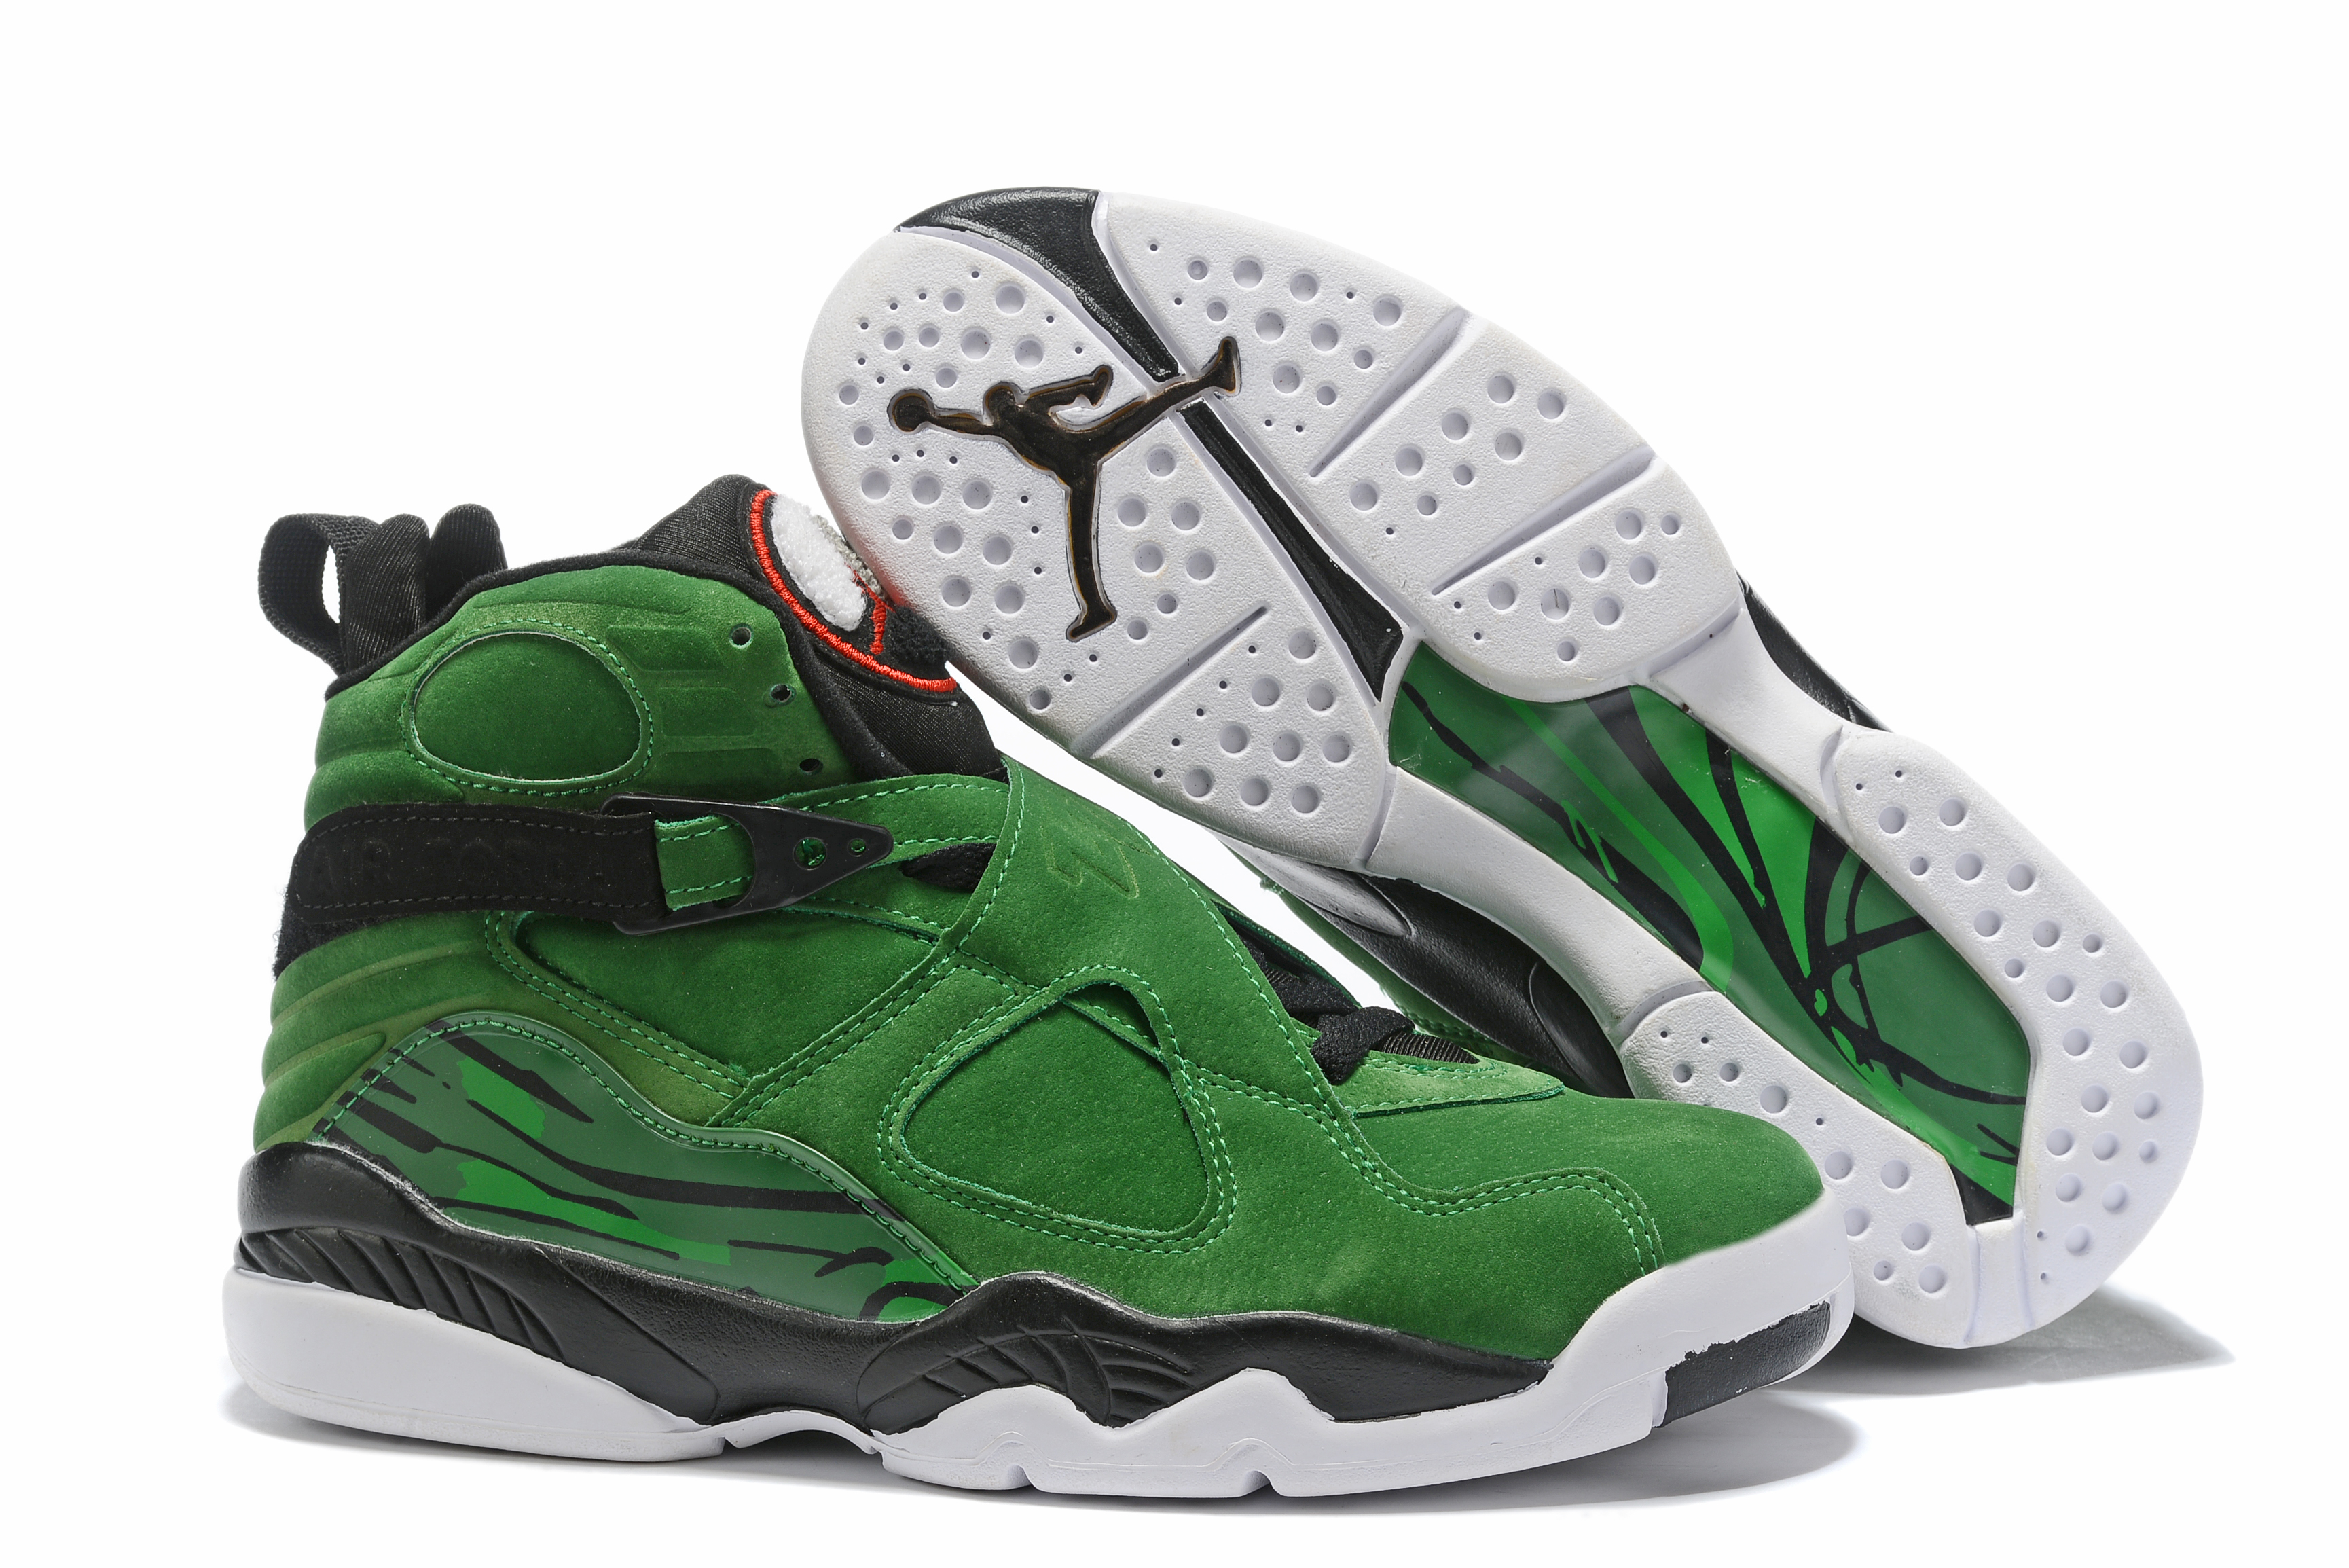 2019 Air Jordan Shoes 8 Green Black